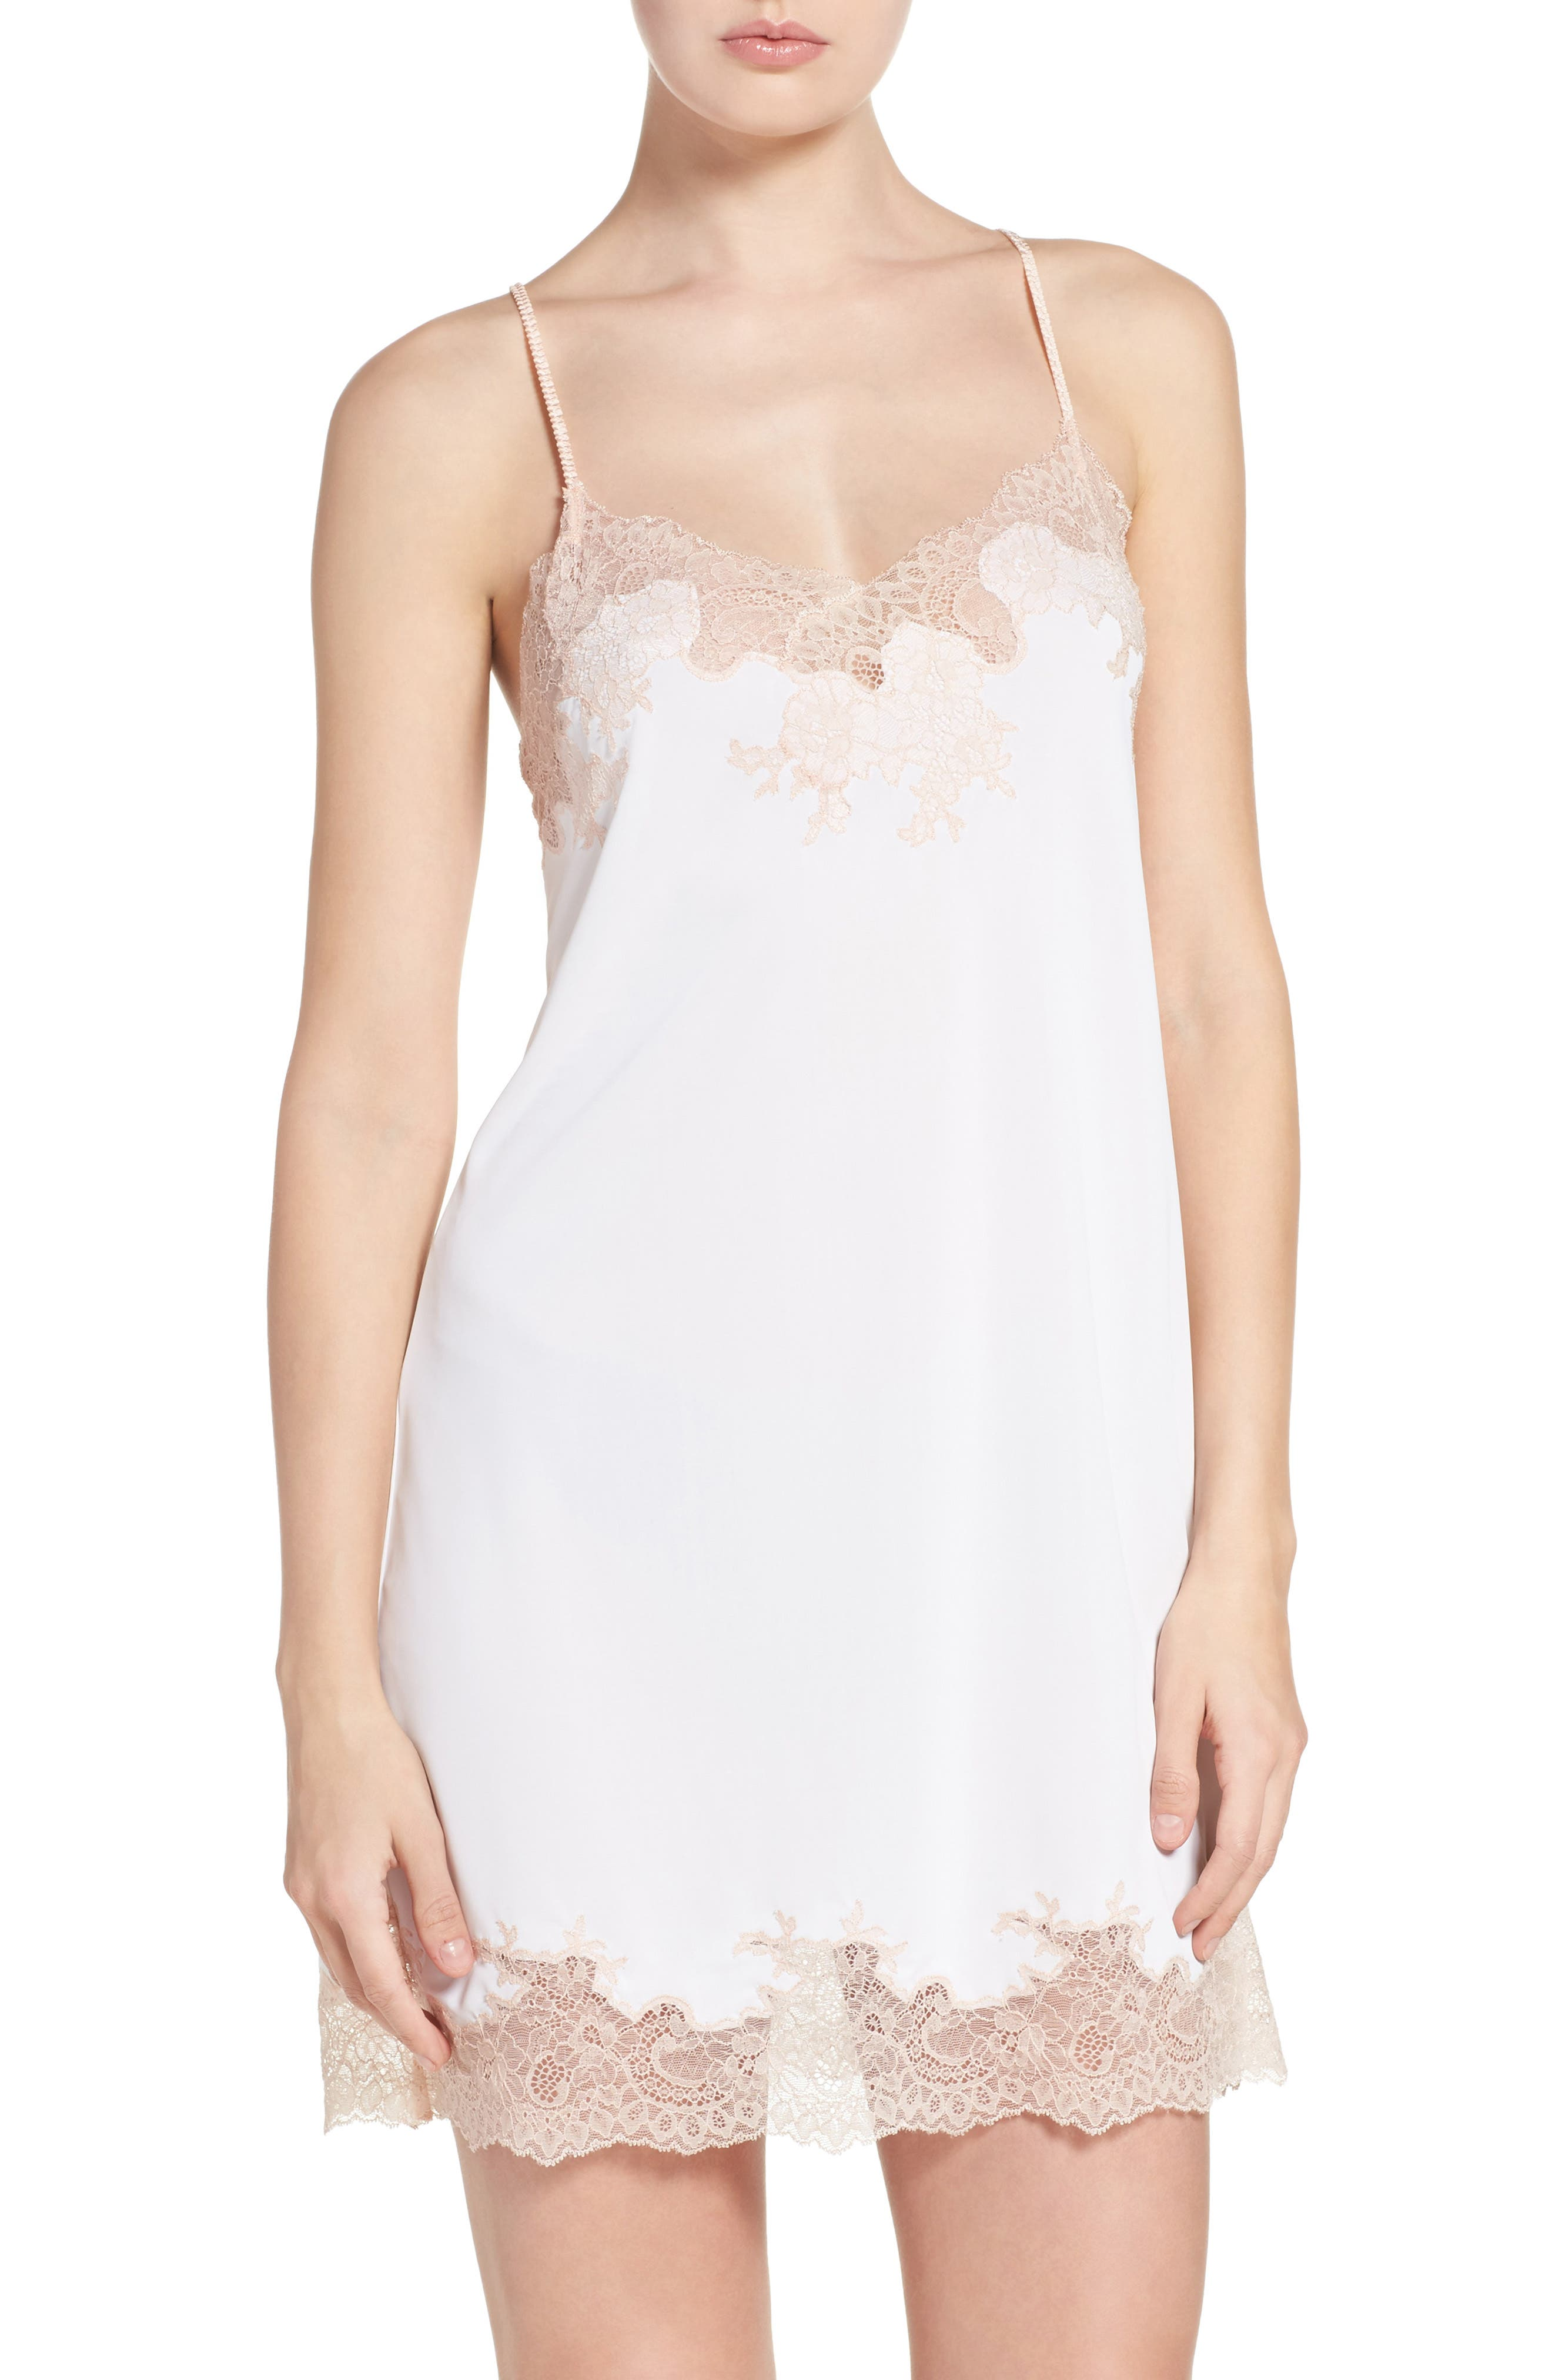 Enchant Chemise,                             Main thumbnail 1, color,                             IVORY/ CAMEO ROSE LACE